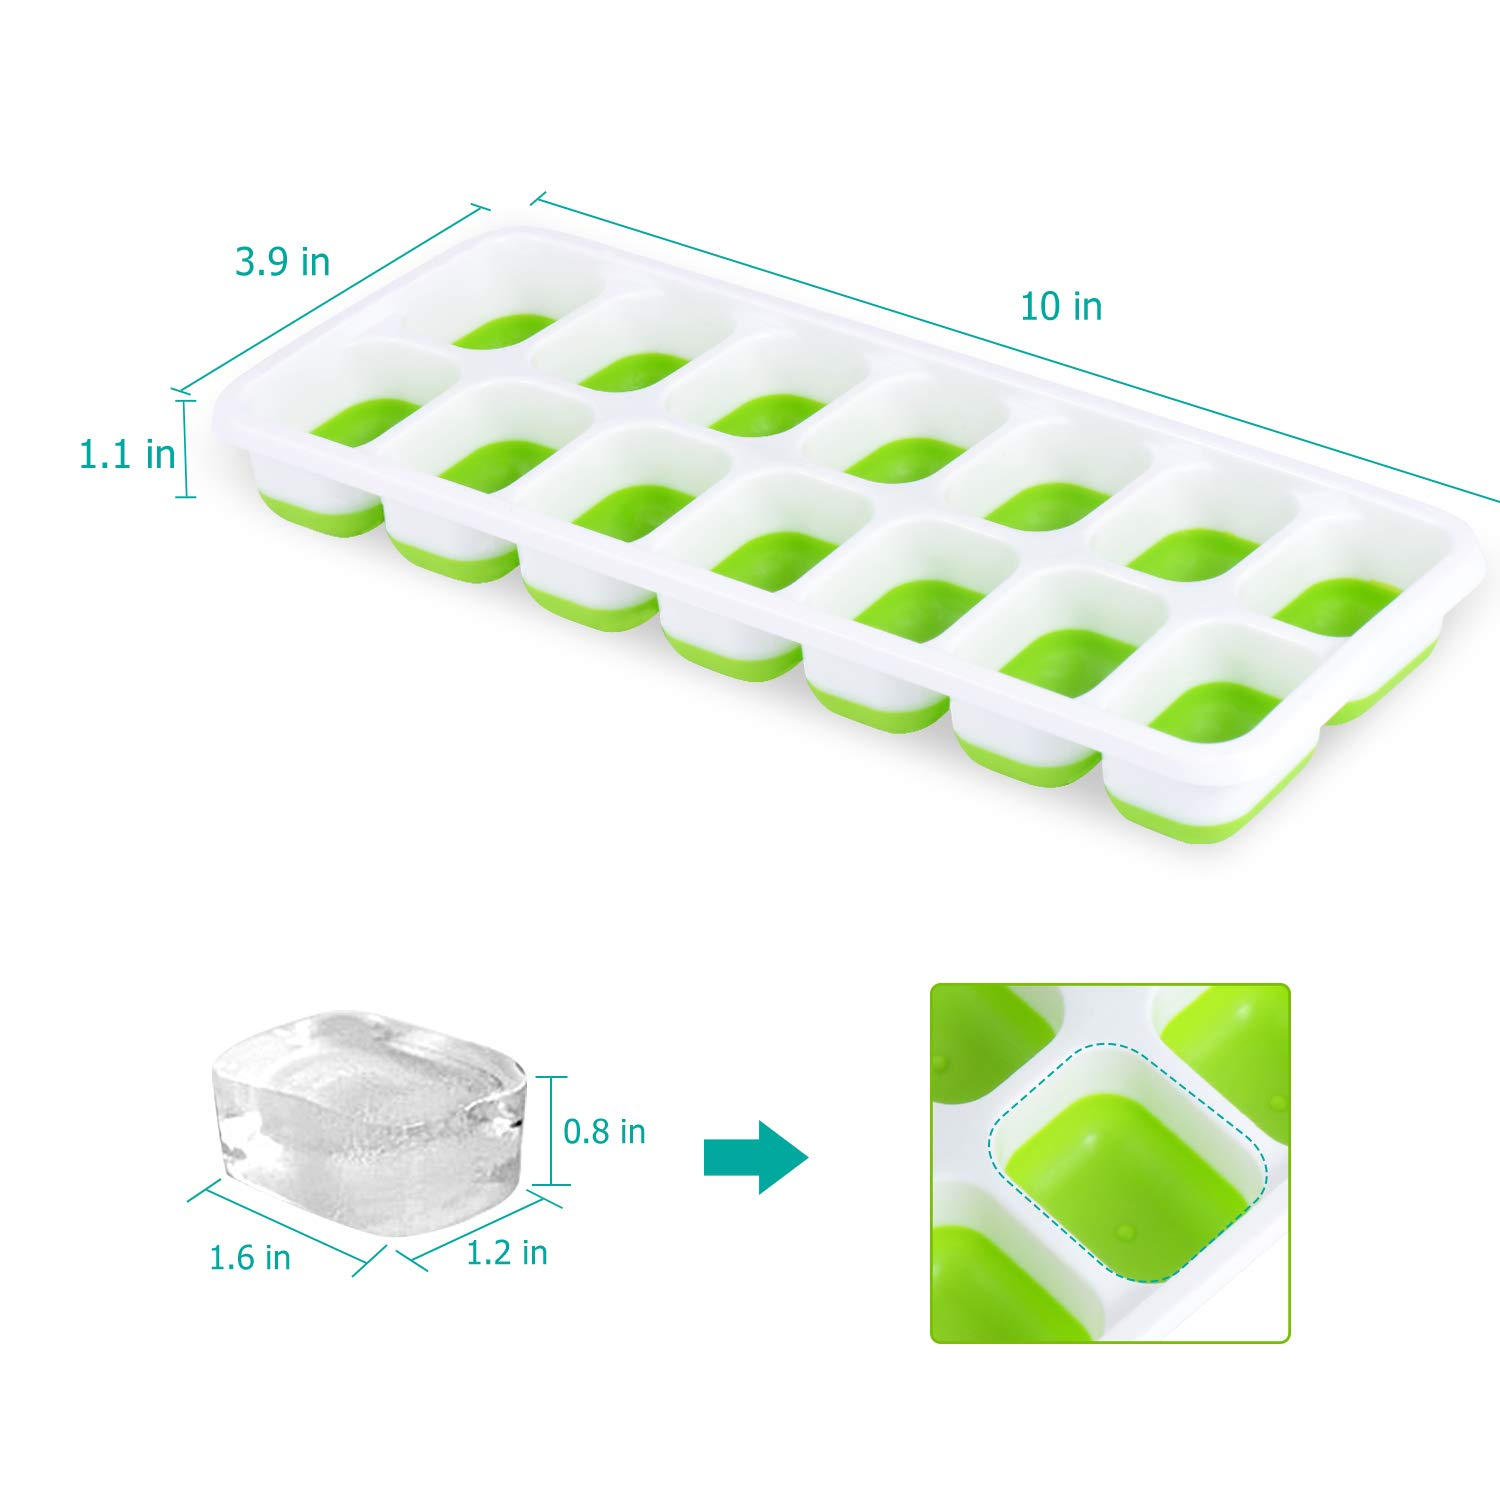 Adoric Ice Cube Trays 3 Pack Easy-Release Silicone and Flexible 14-Ice Trays Spill-Resistant Durable and Stackable Ice Cube Trays with Lids